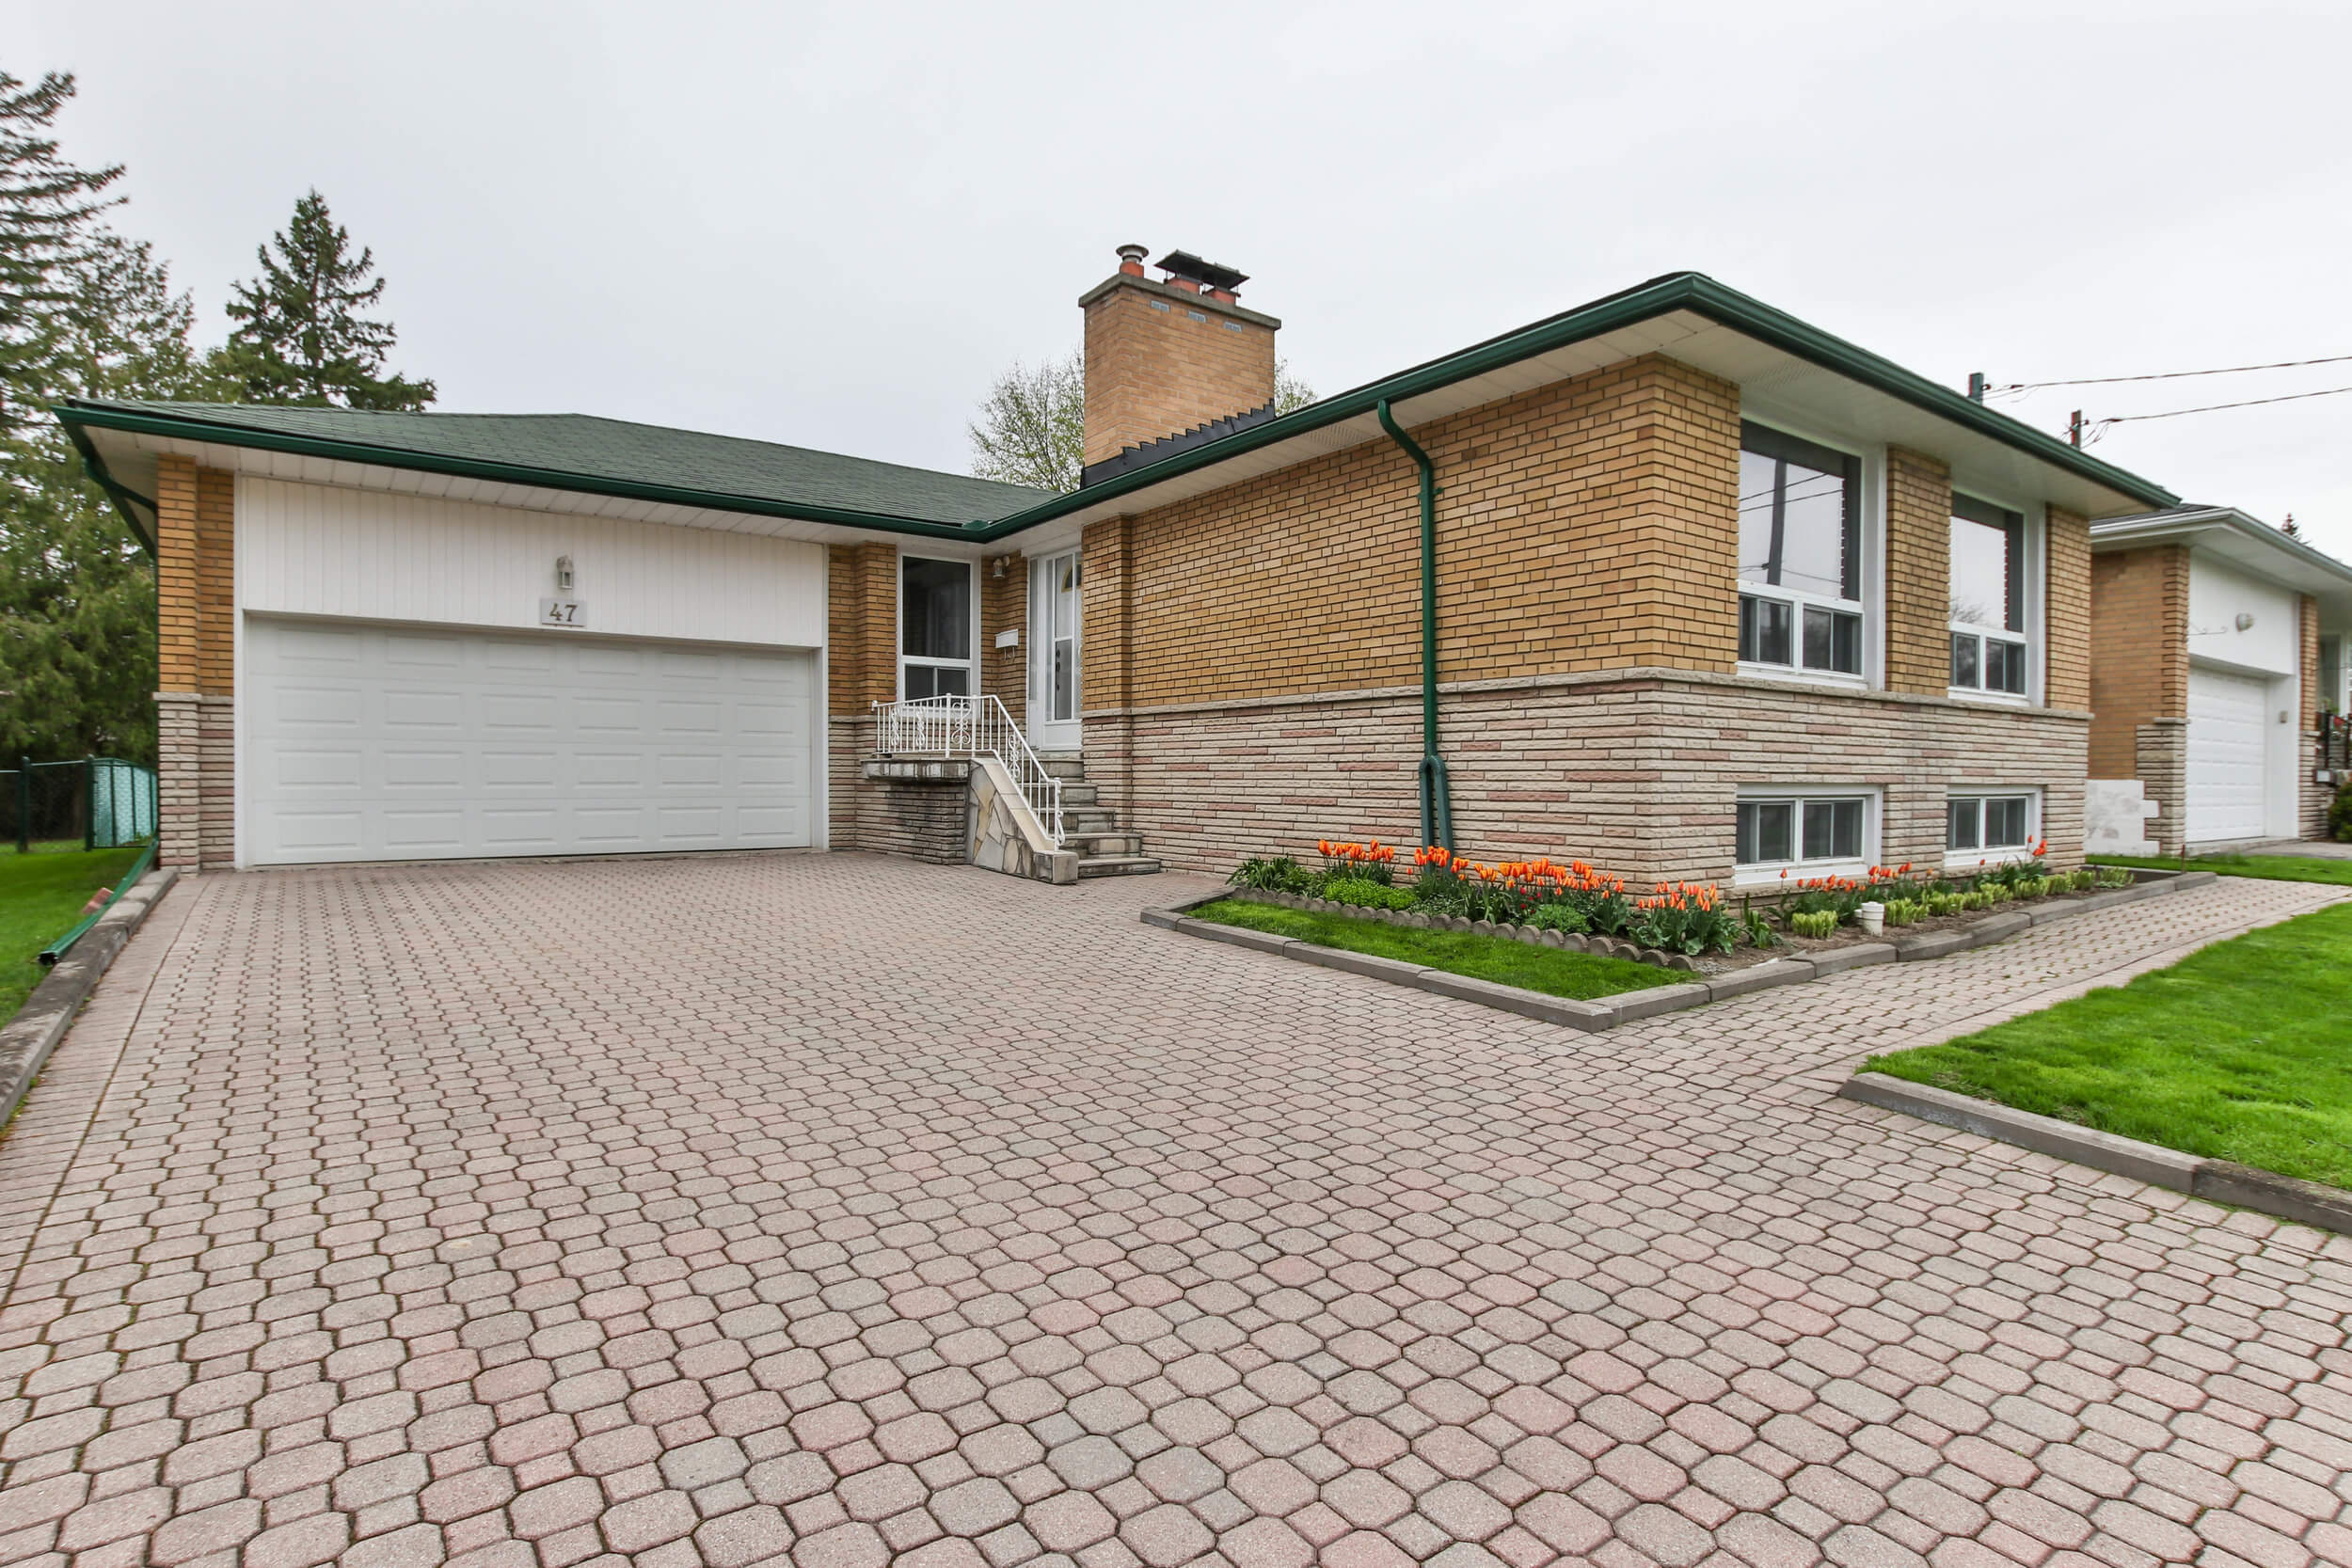 47 Bathford Cres